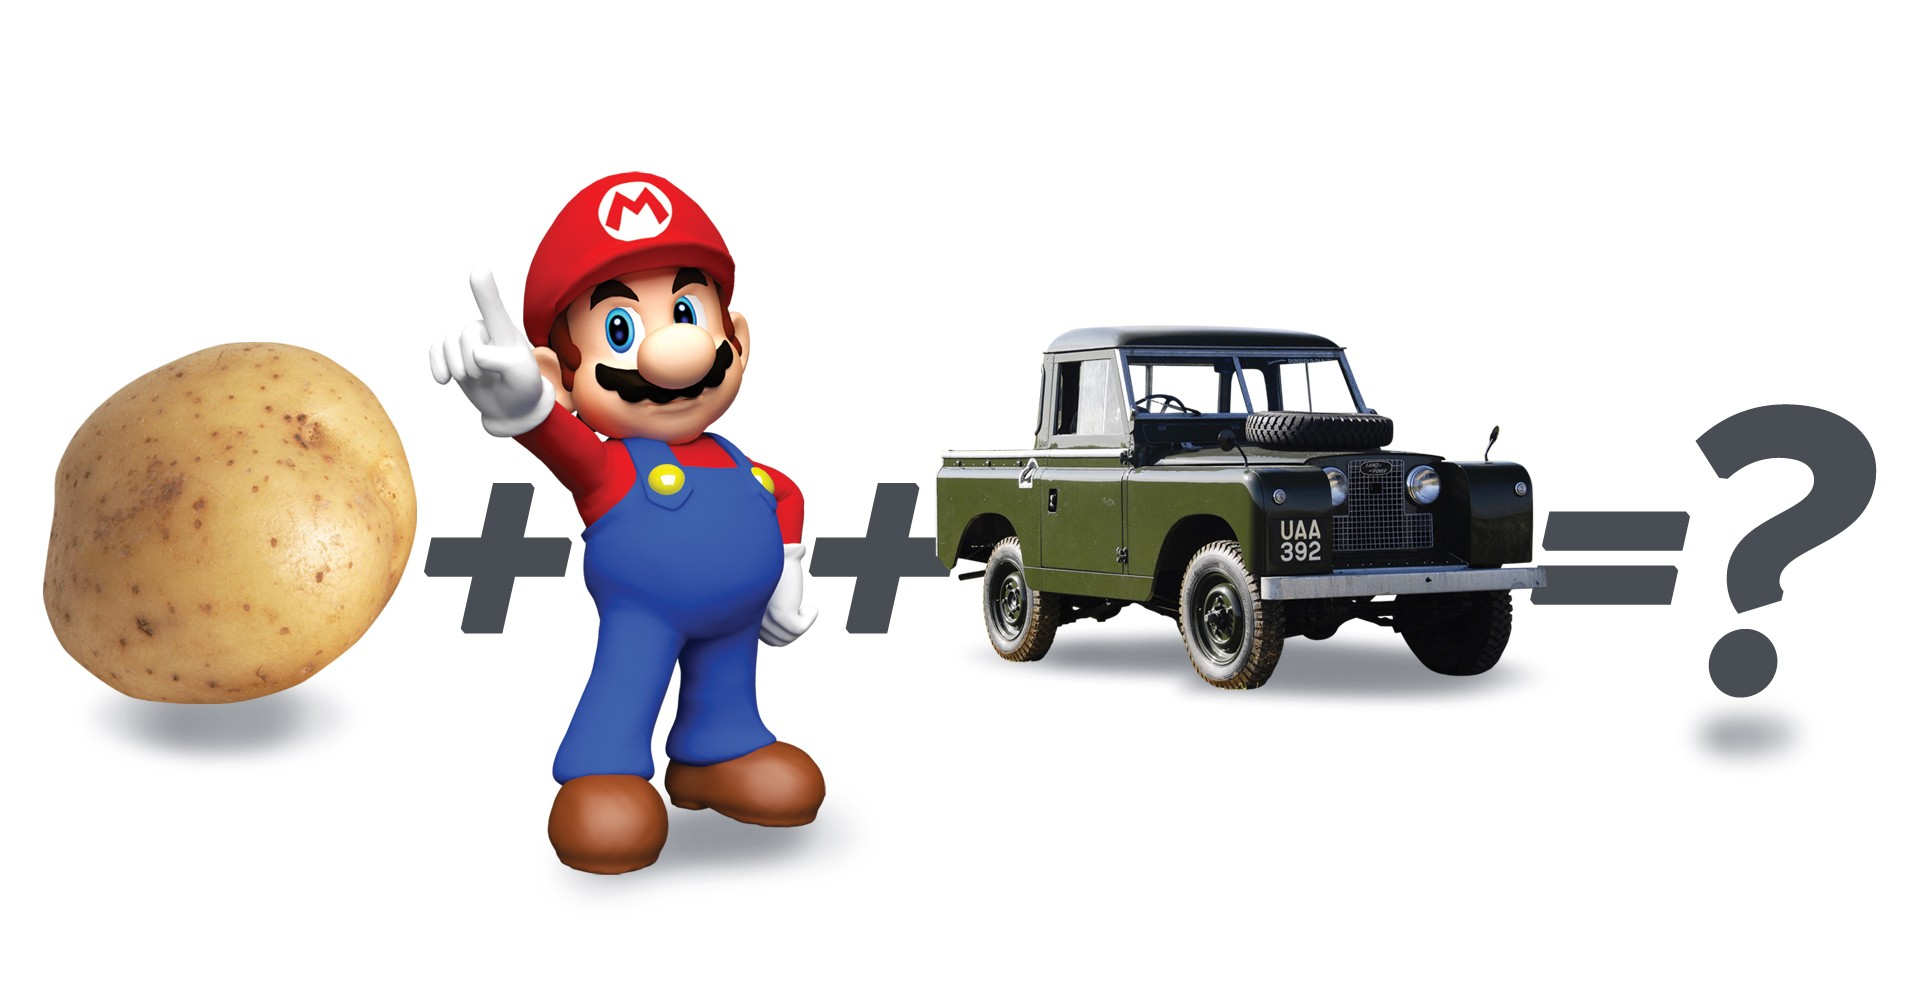 Super Mario Fixes Old Land Rover With A Potato, Doesn't Get Extra Life